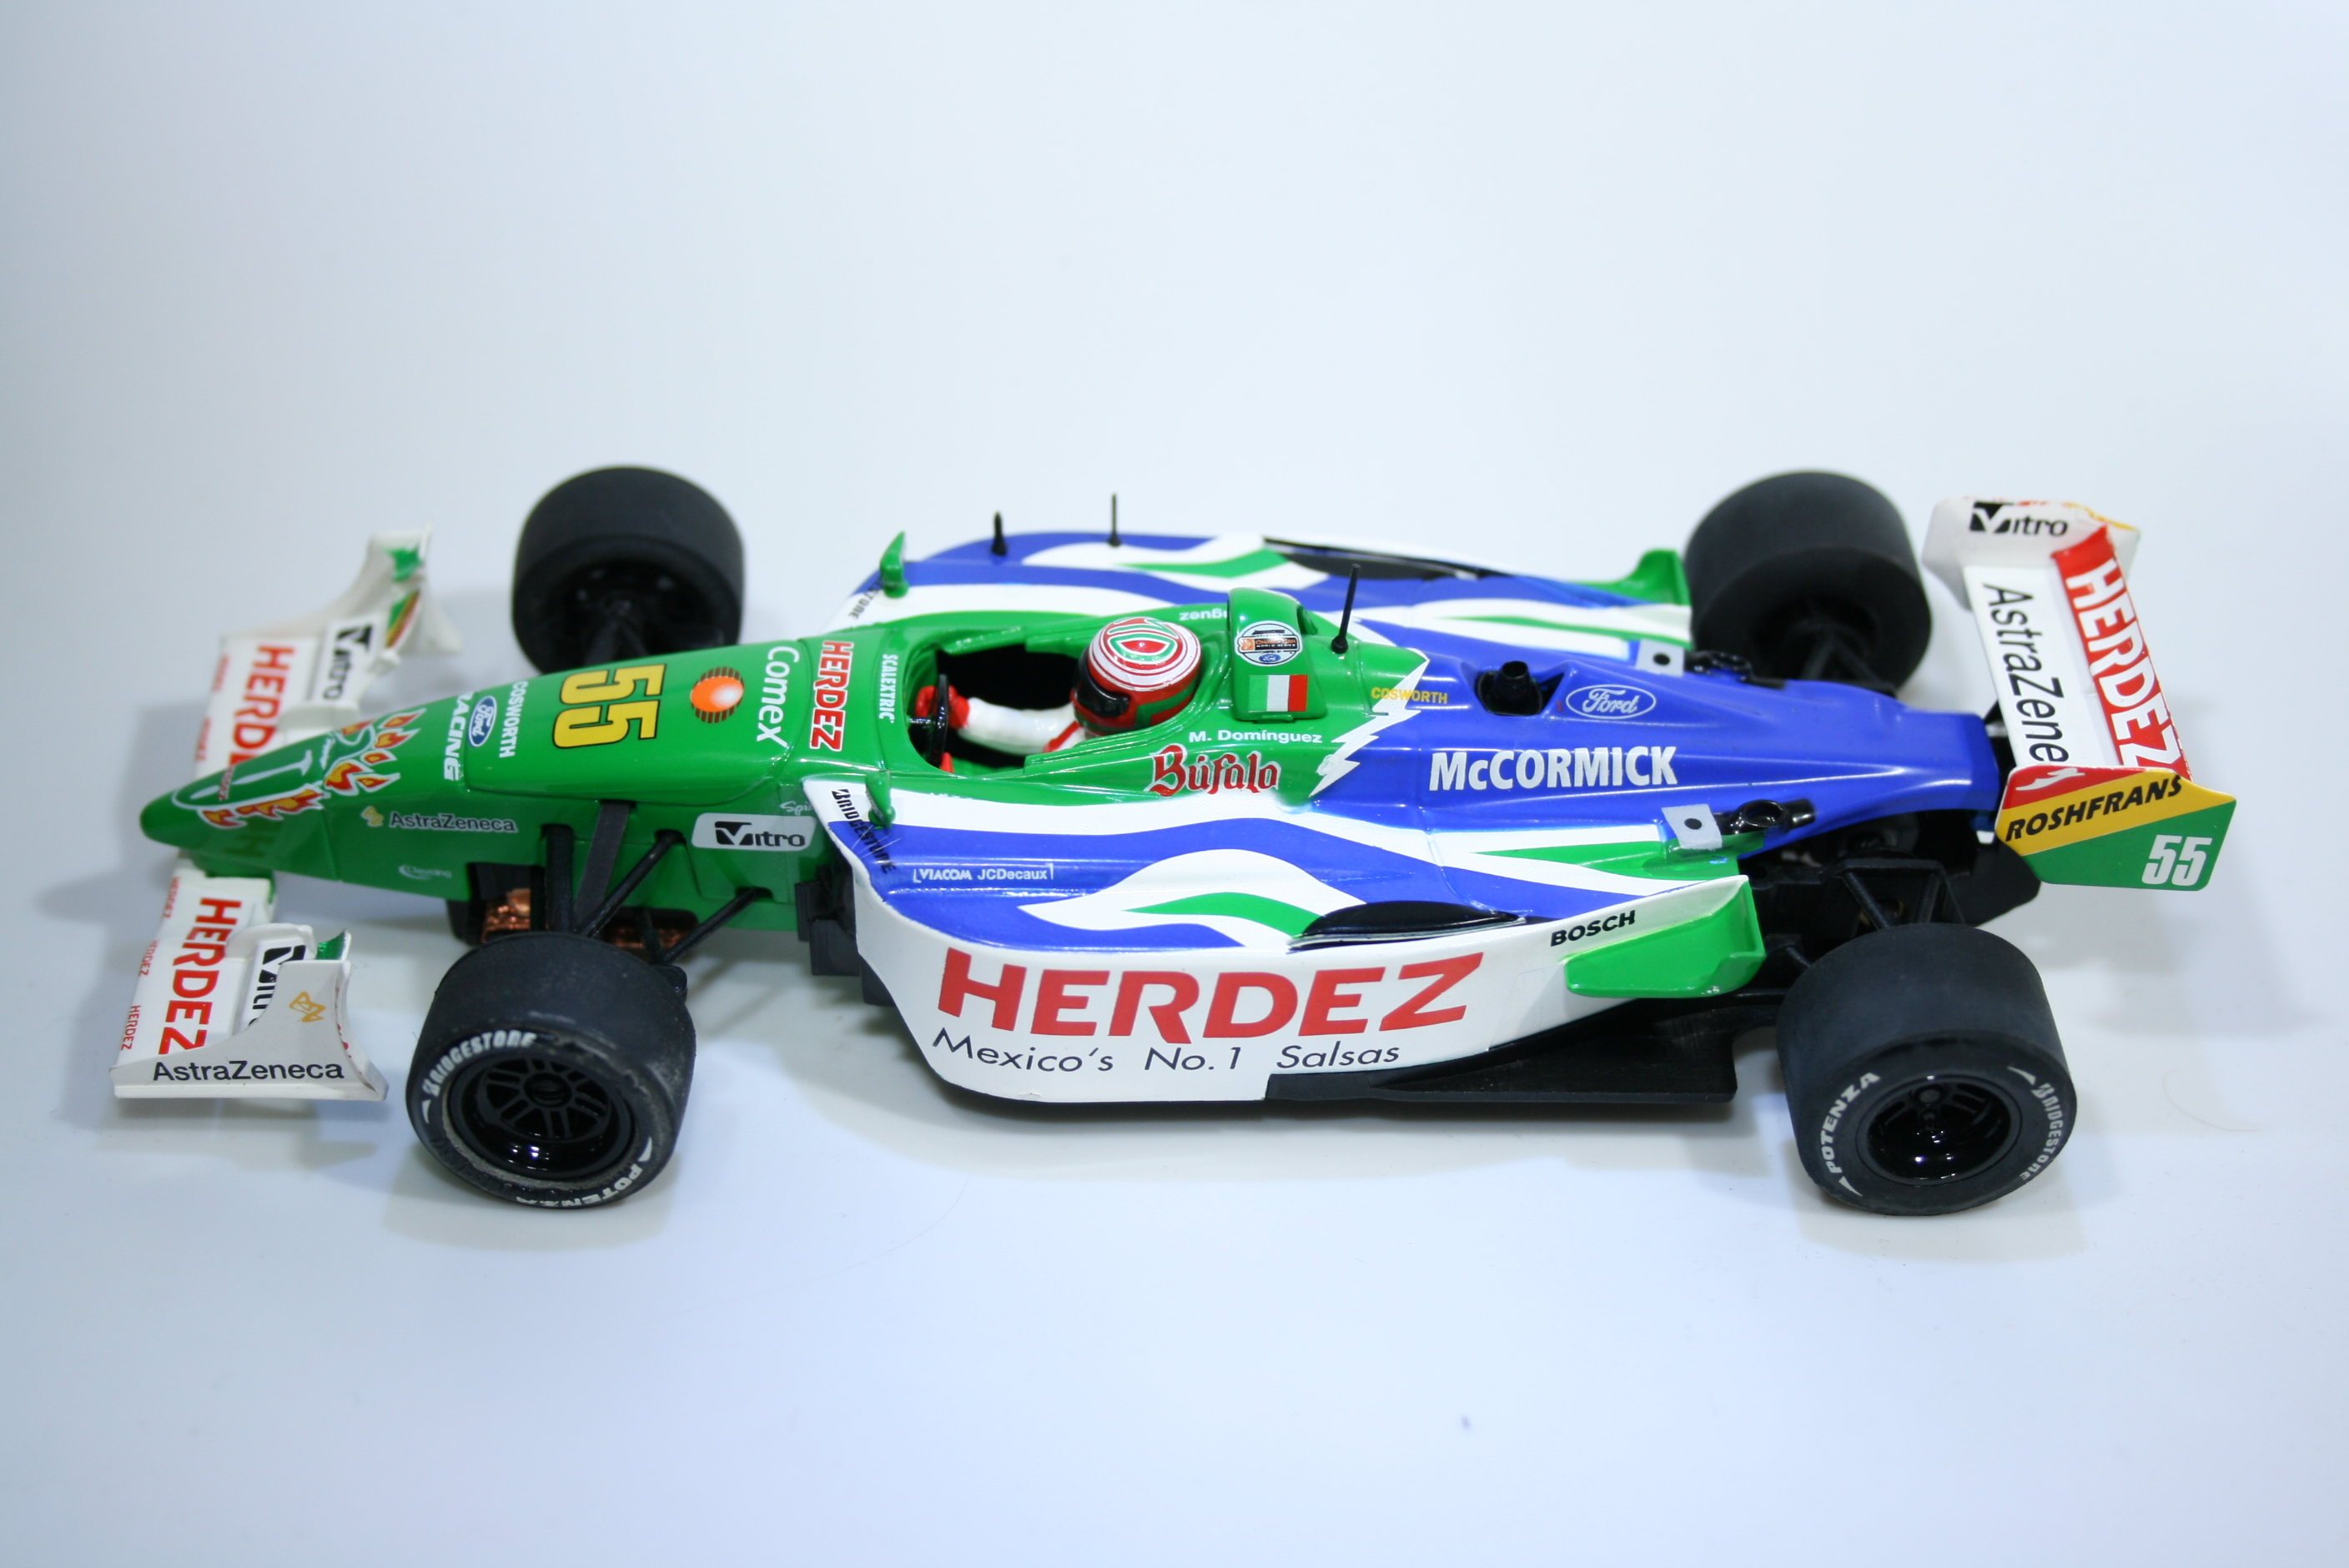 348 Lola Ford Herdez 2004 M Dominguez SCX 61530 2004 Boxed